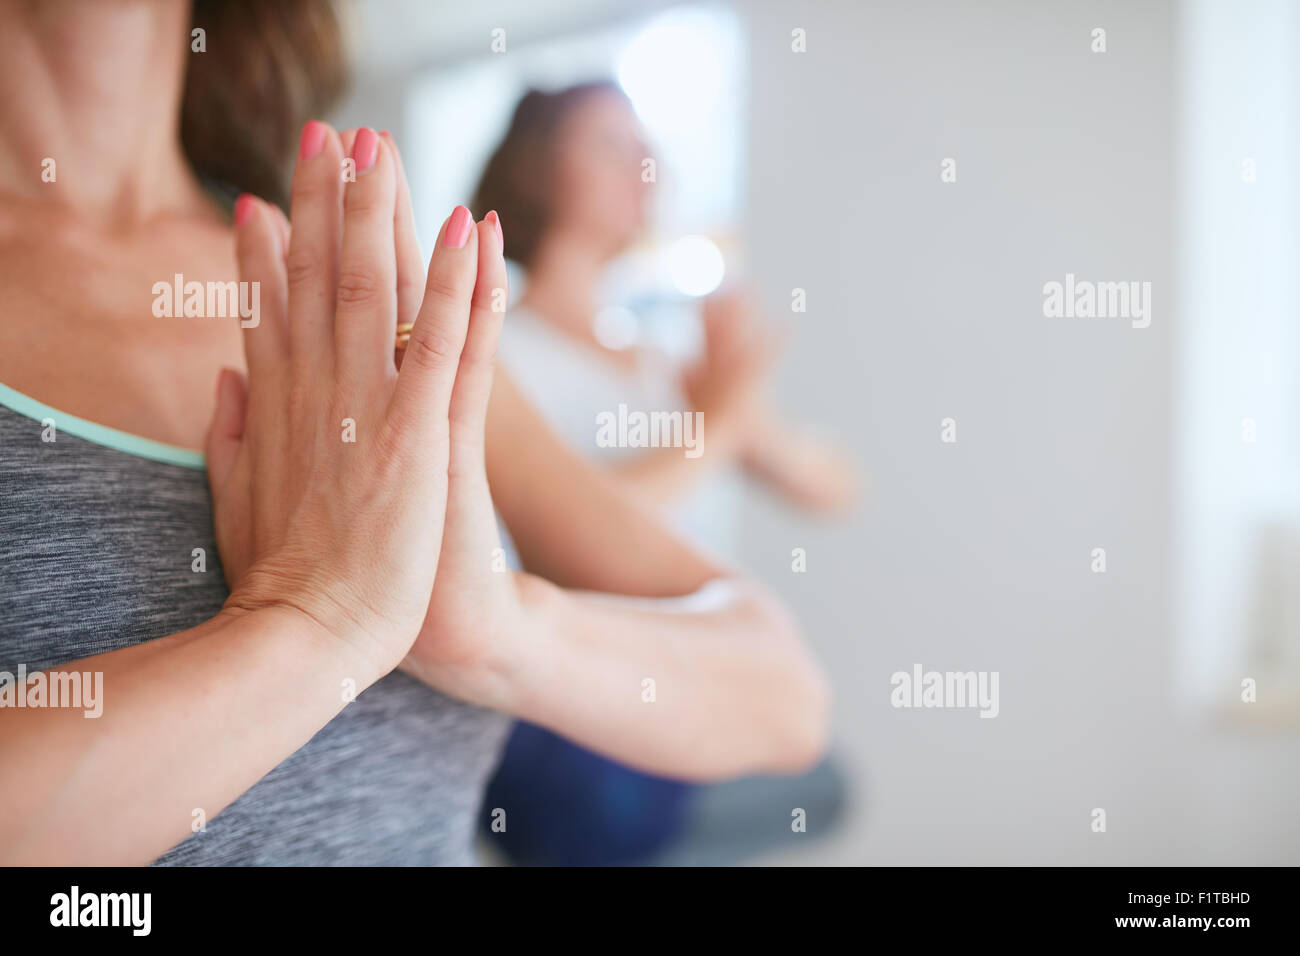 Close up shot of women at yoga class meditating with hands clasped. Female hands in namaste gesture during yoga Stock Photo